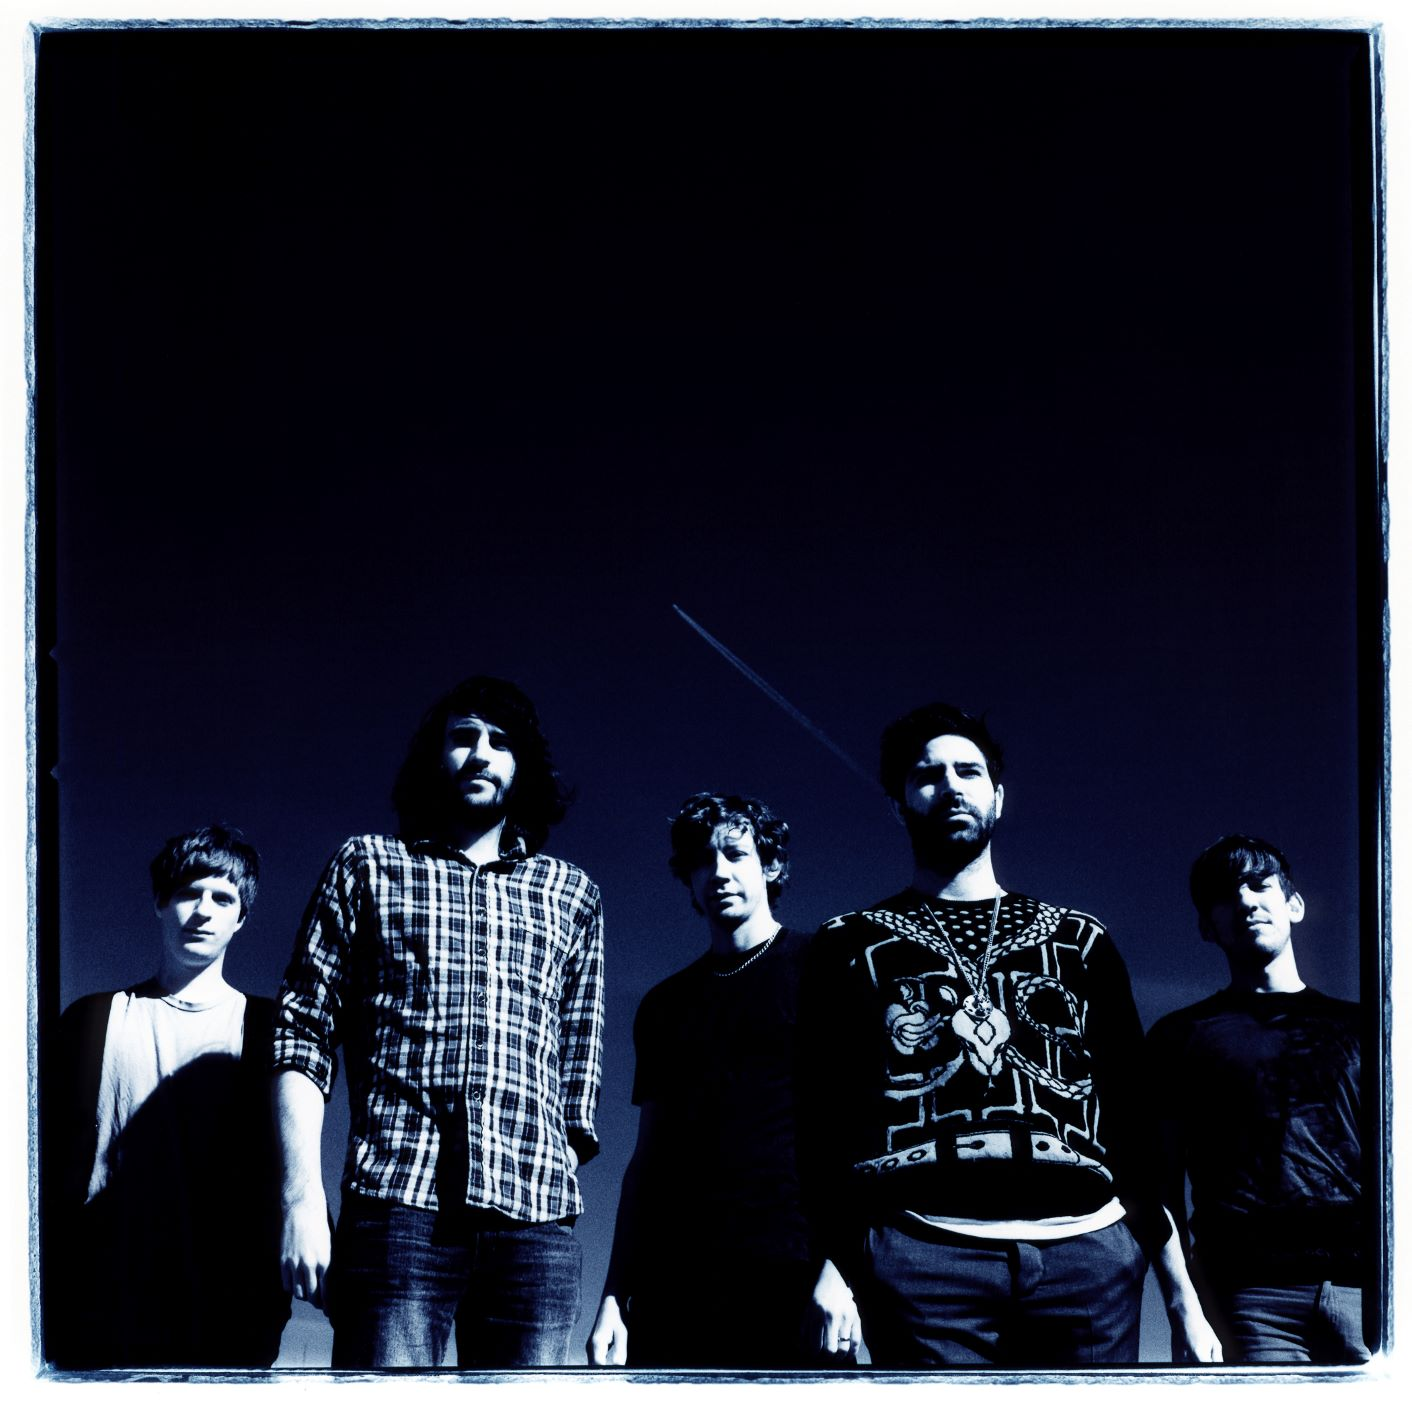 Foals' Guitarists Jimmy Smith Annouces He Is Working On Solo Album